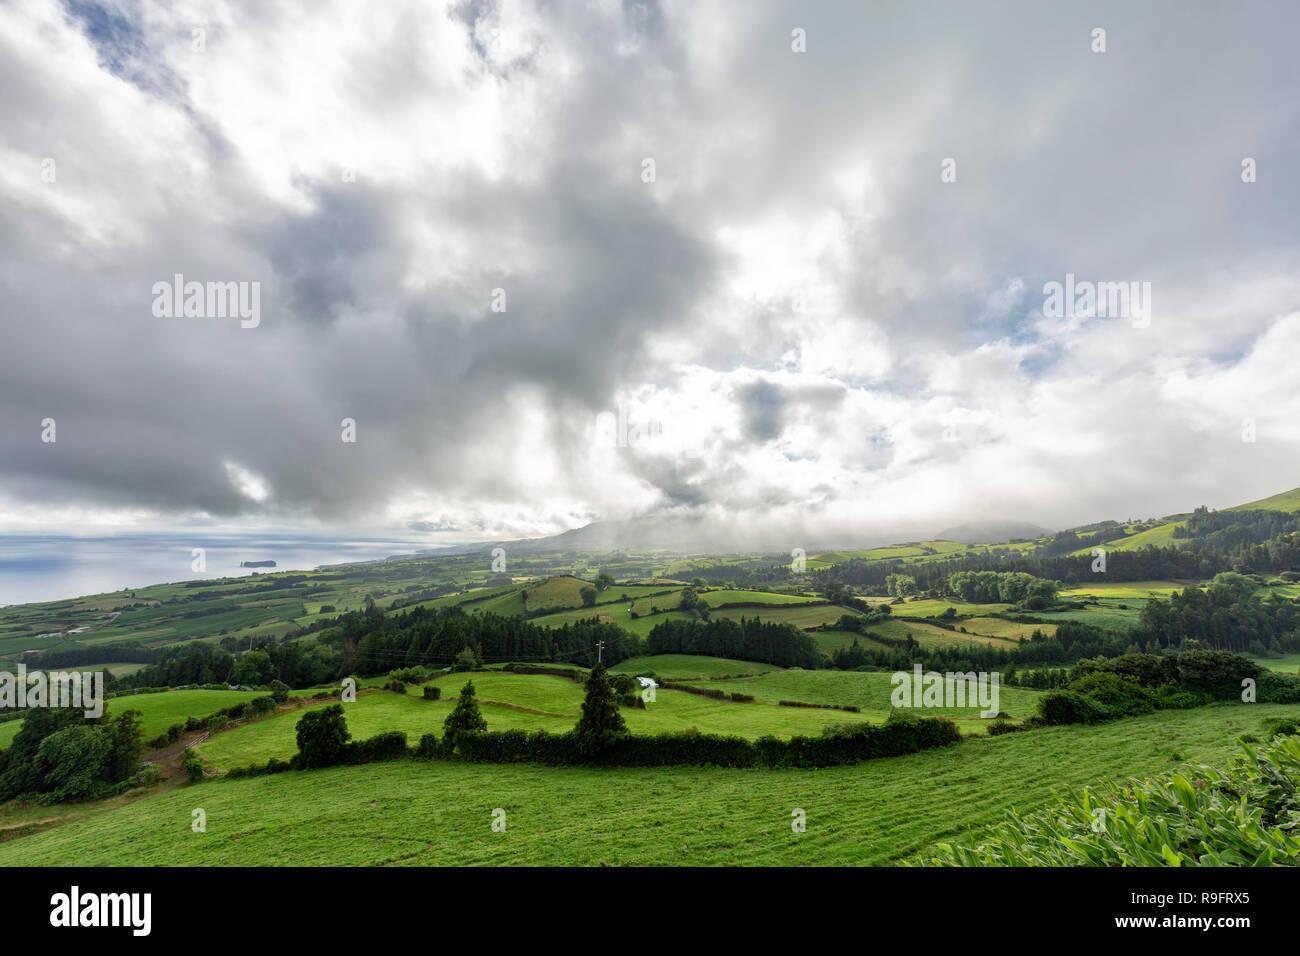 Pastures with beautiful clouds in the summertime near Vila Franca do Campo in the Azores, Portugal. - Stock Image